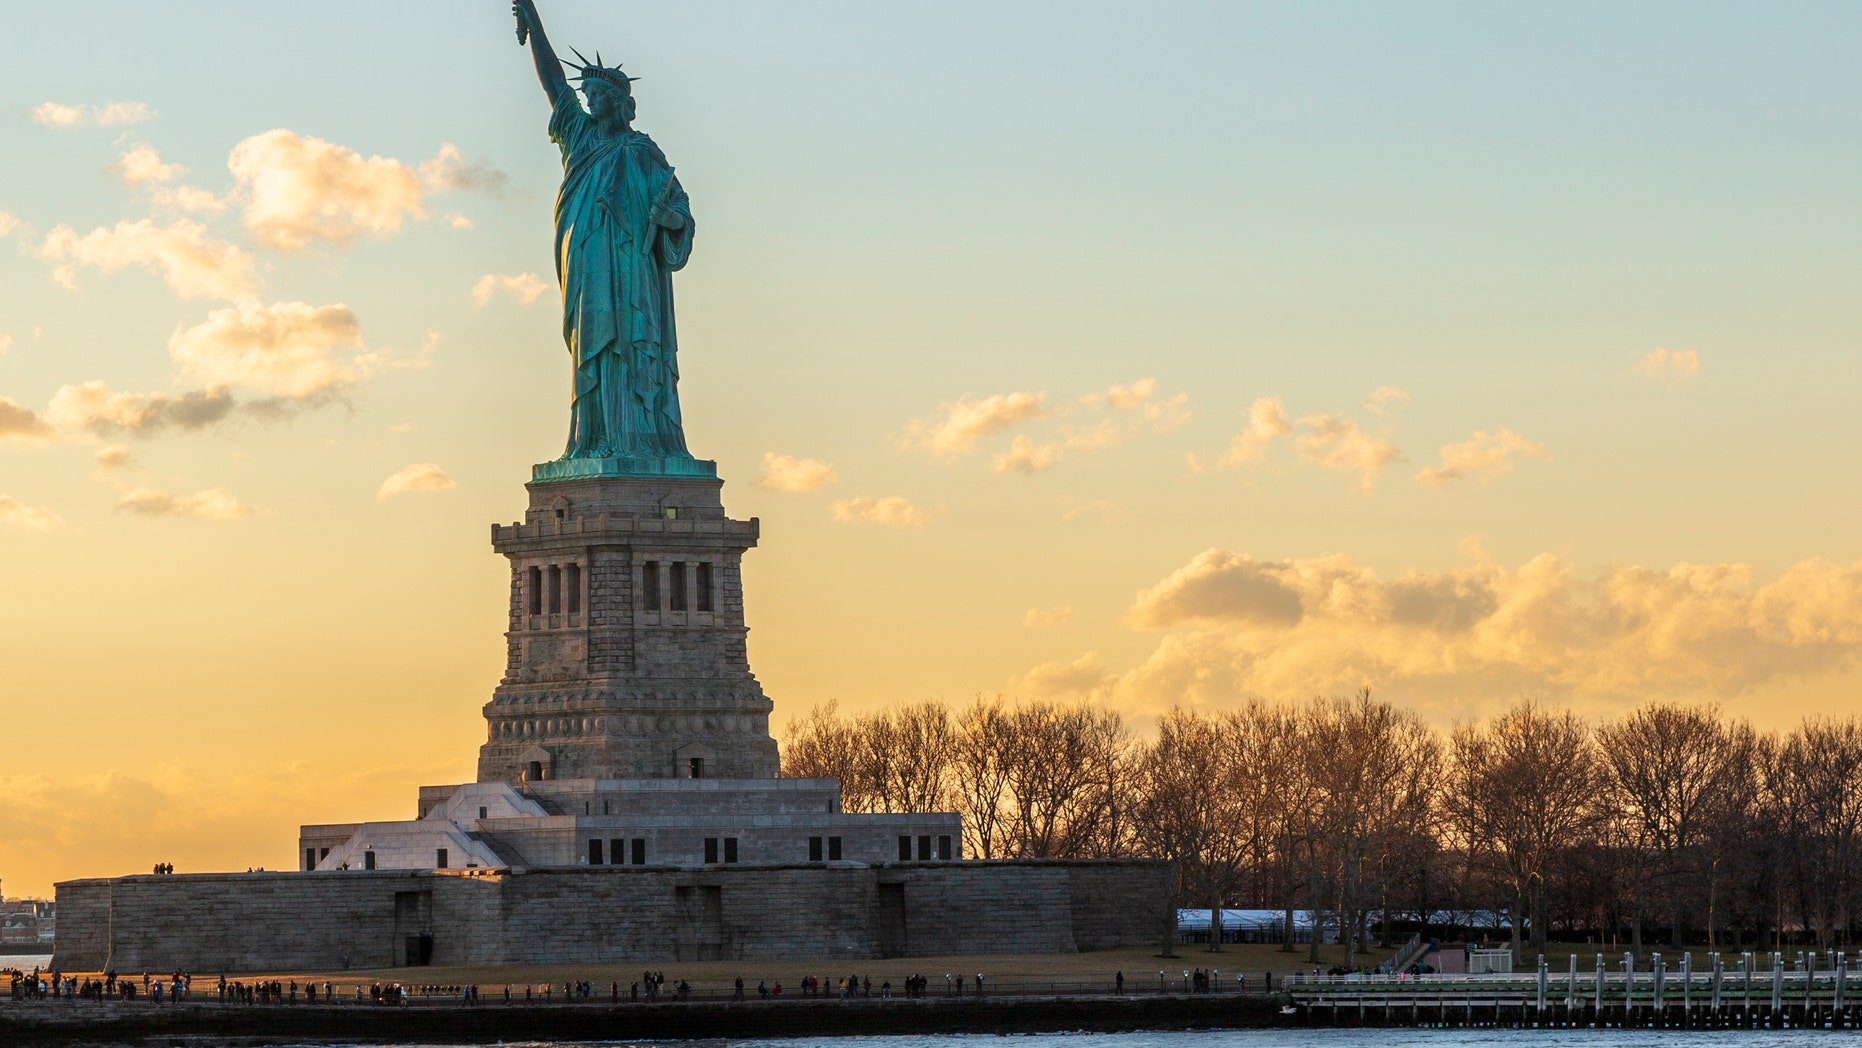 Statue of liberty horizontal during sunset in New York City, NY, USA